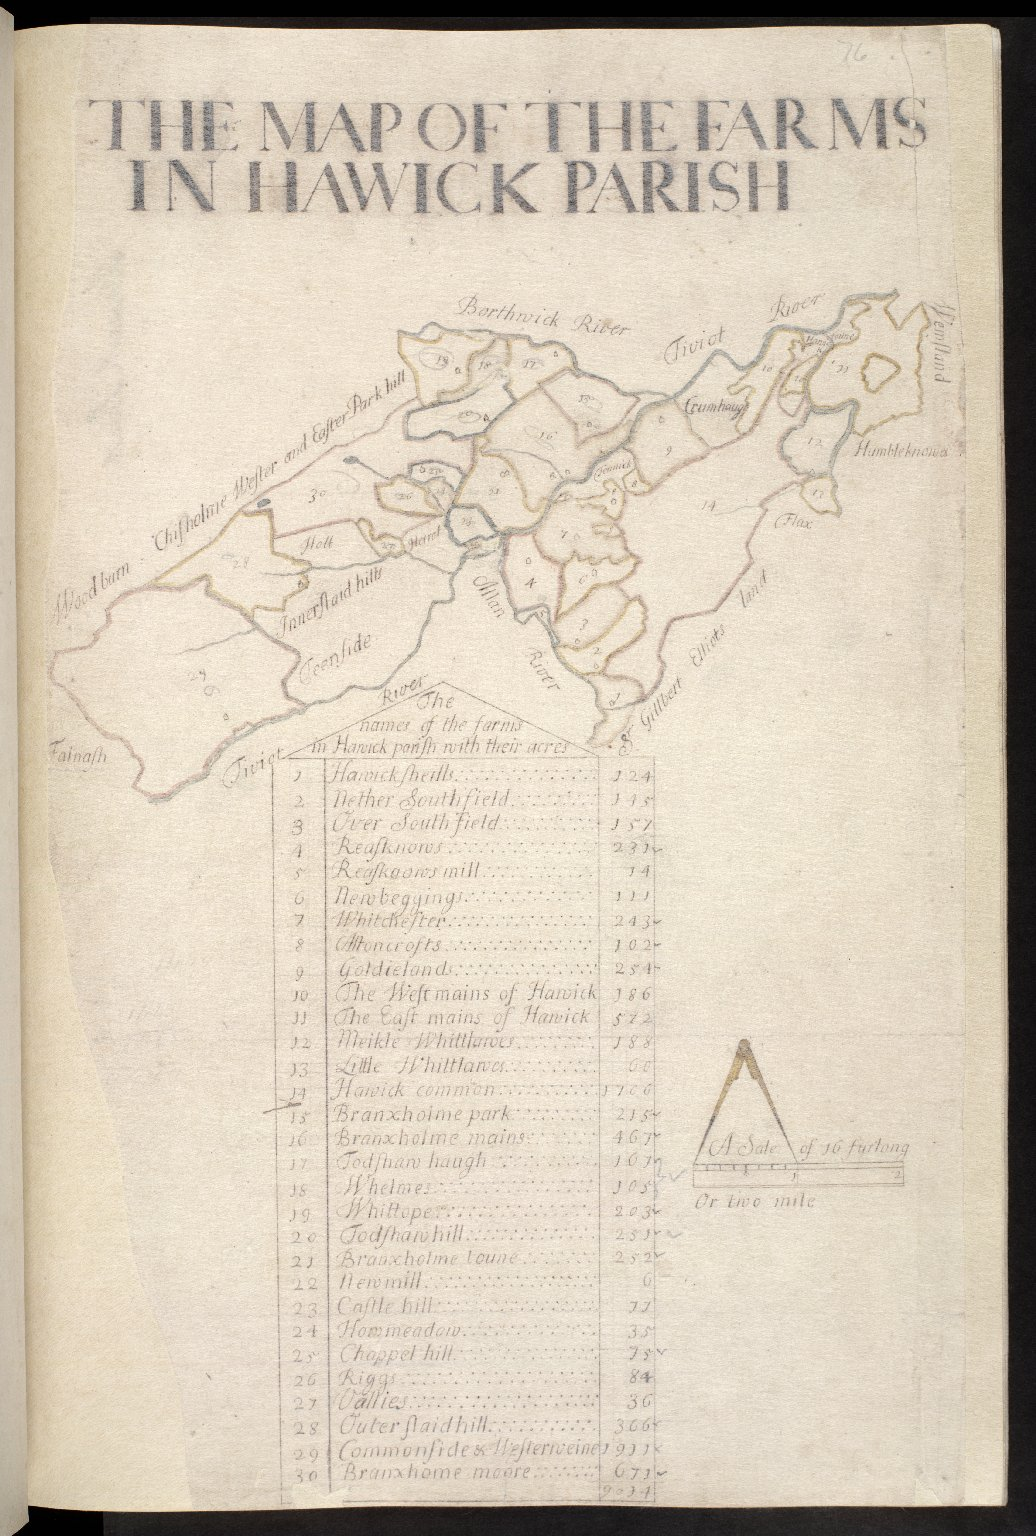 The Map of the Farms in Hawick Parish [1 of 2]